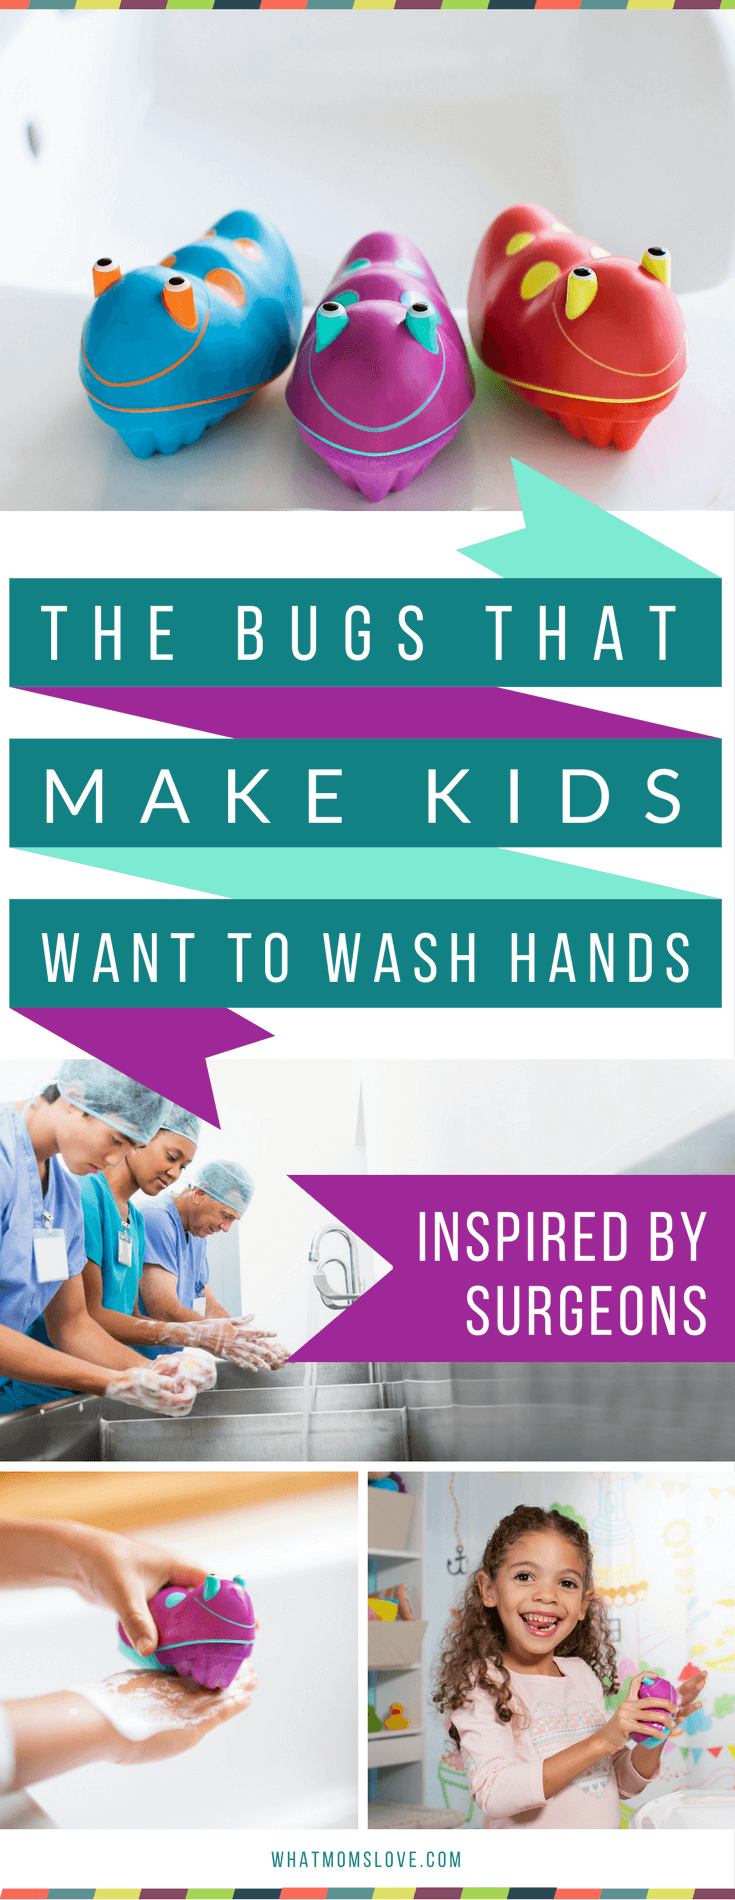 Scrub Bugs - keep your kids healthy all year round - especially during the winter, flu and cold season! These Scrub Bugs are 3 times more effective, and a fun way to get kids to wash their hands - keeping them healthy, instead of sick - hurrah! Learn more and get an exclusive promo code at whatmomslove.com